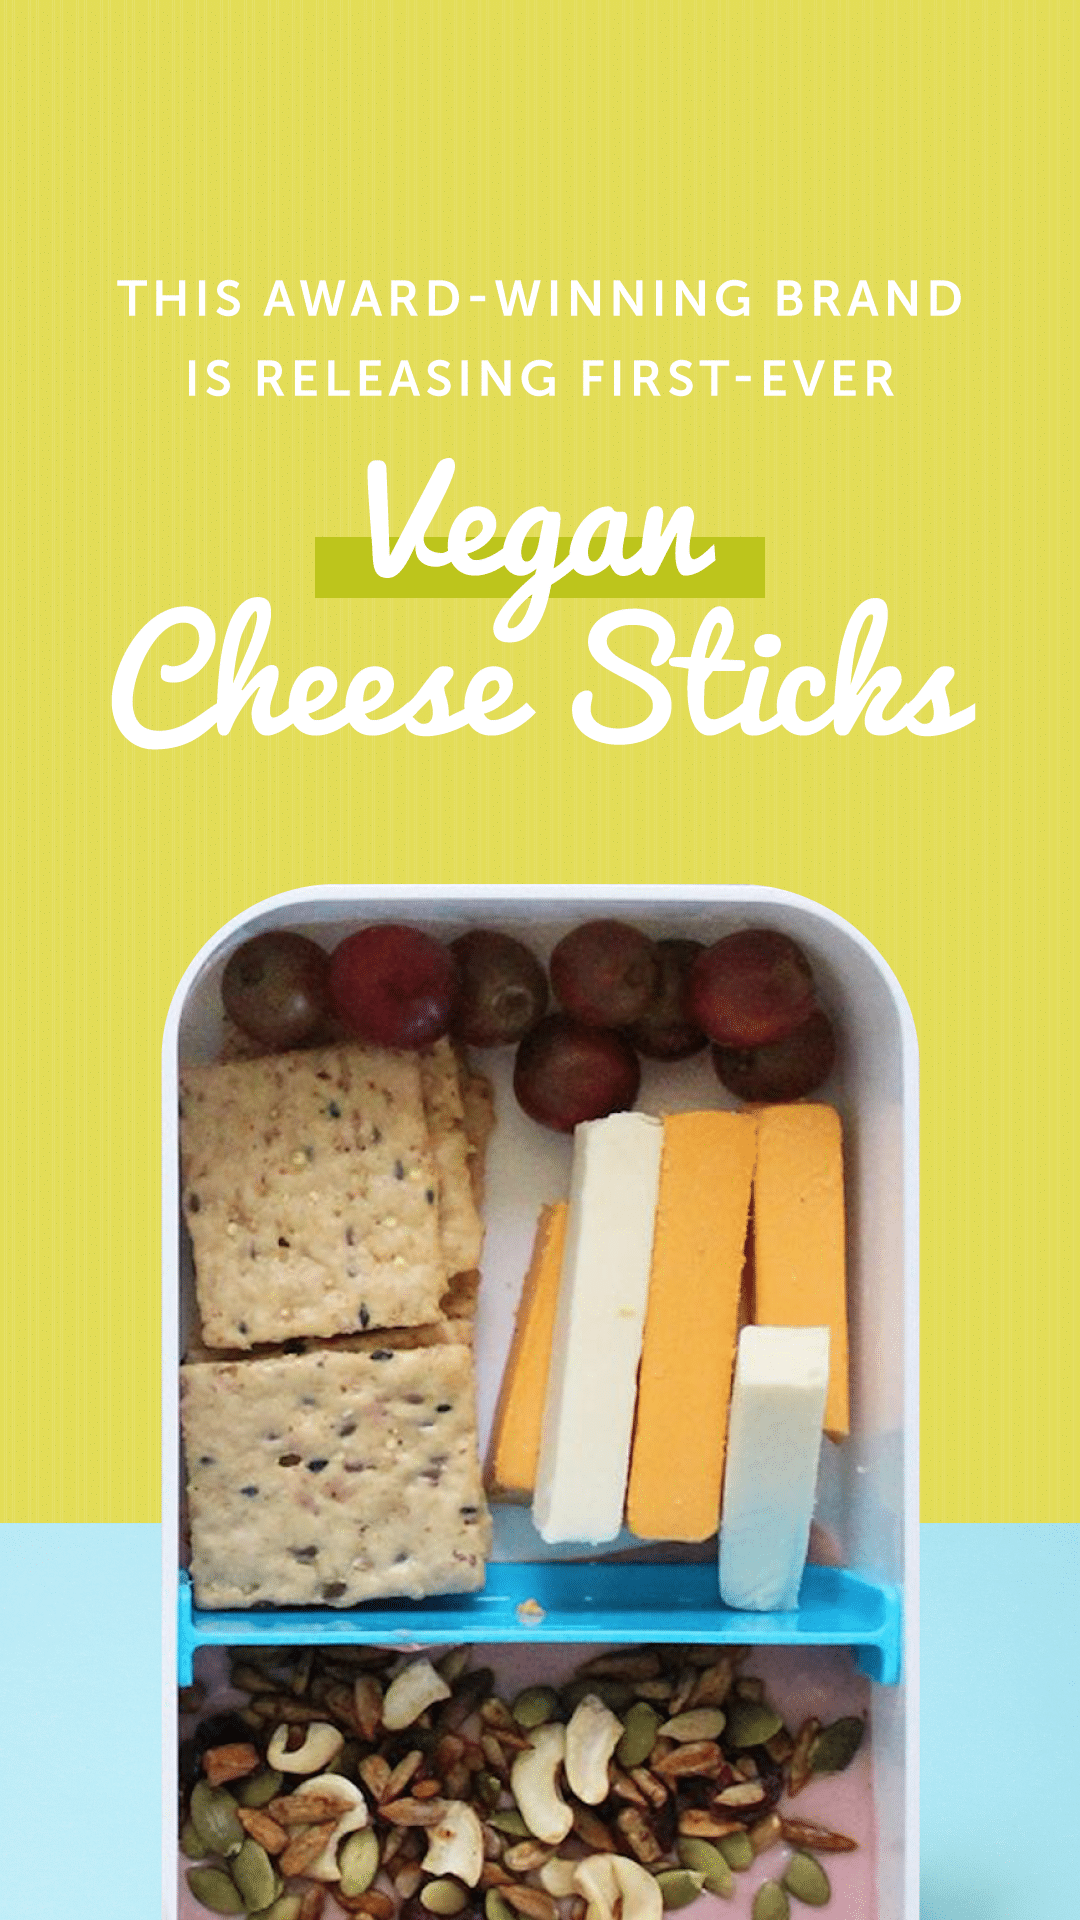 This Award-Winning Brand Is Releasing First-Ever Vegan Cheese Sticks